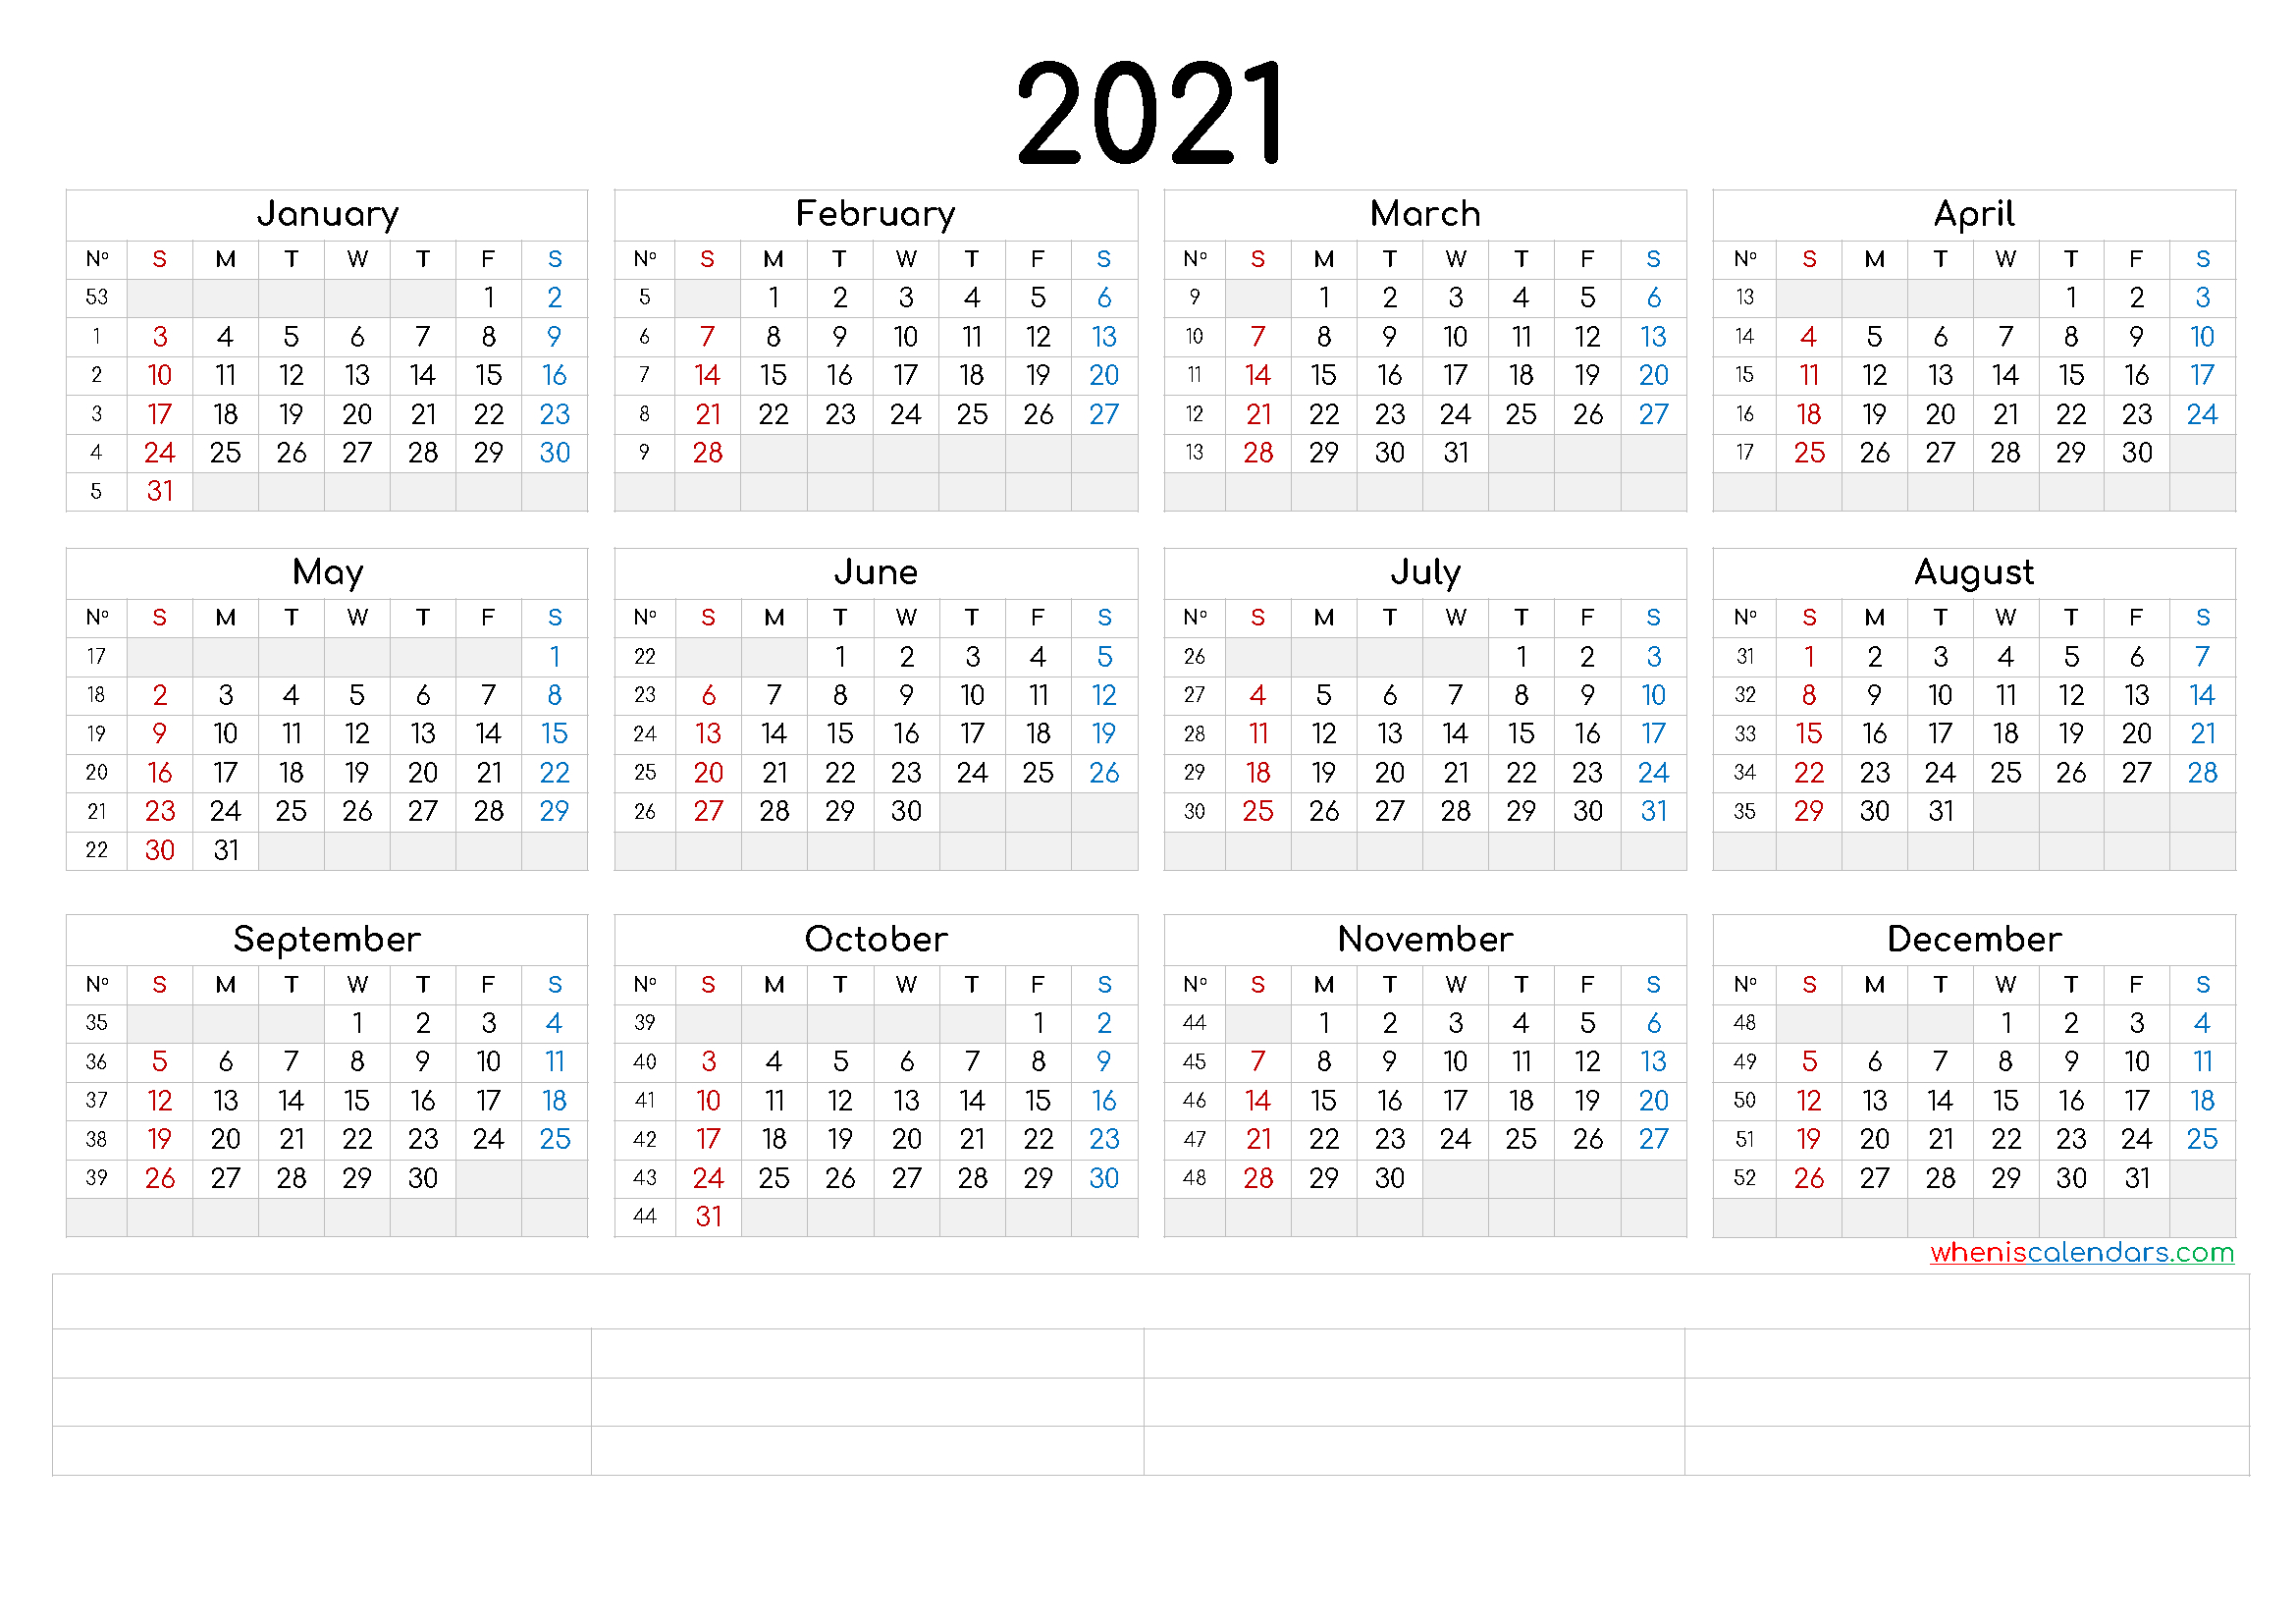 Printable 2021 Calendar By Year (6 Templates) - Free